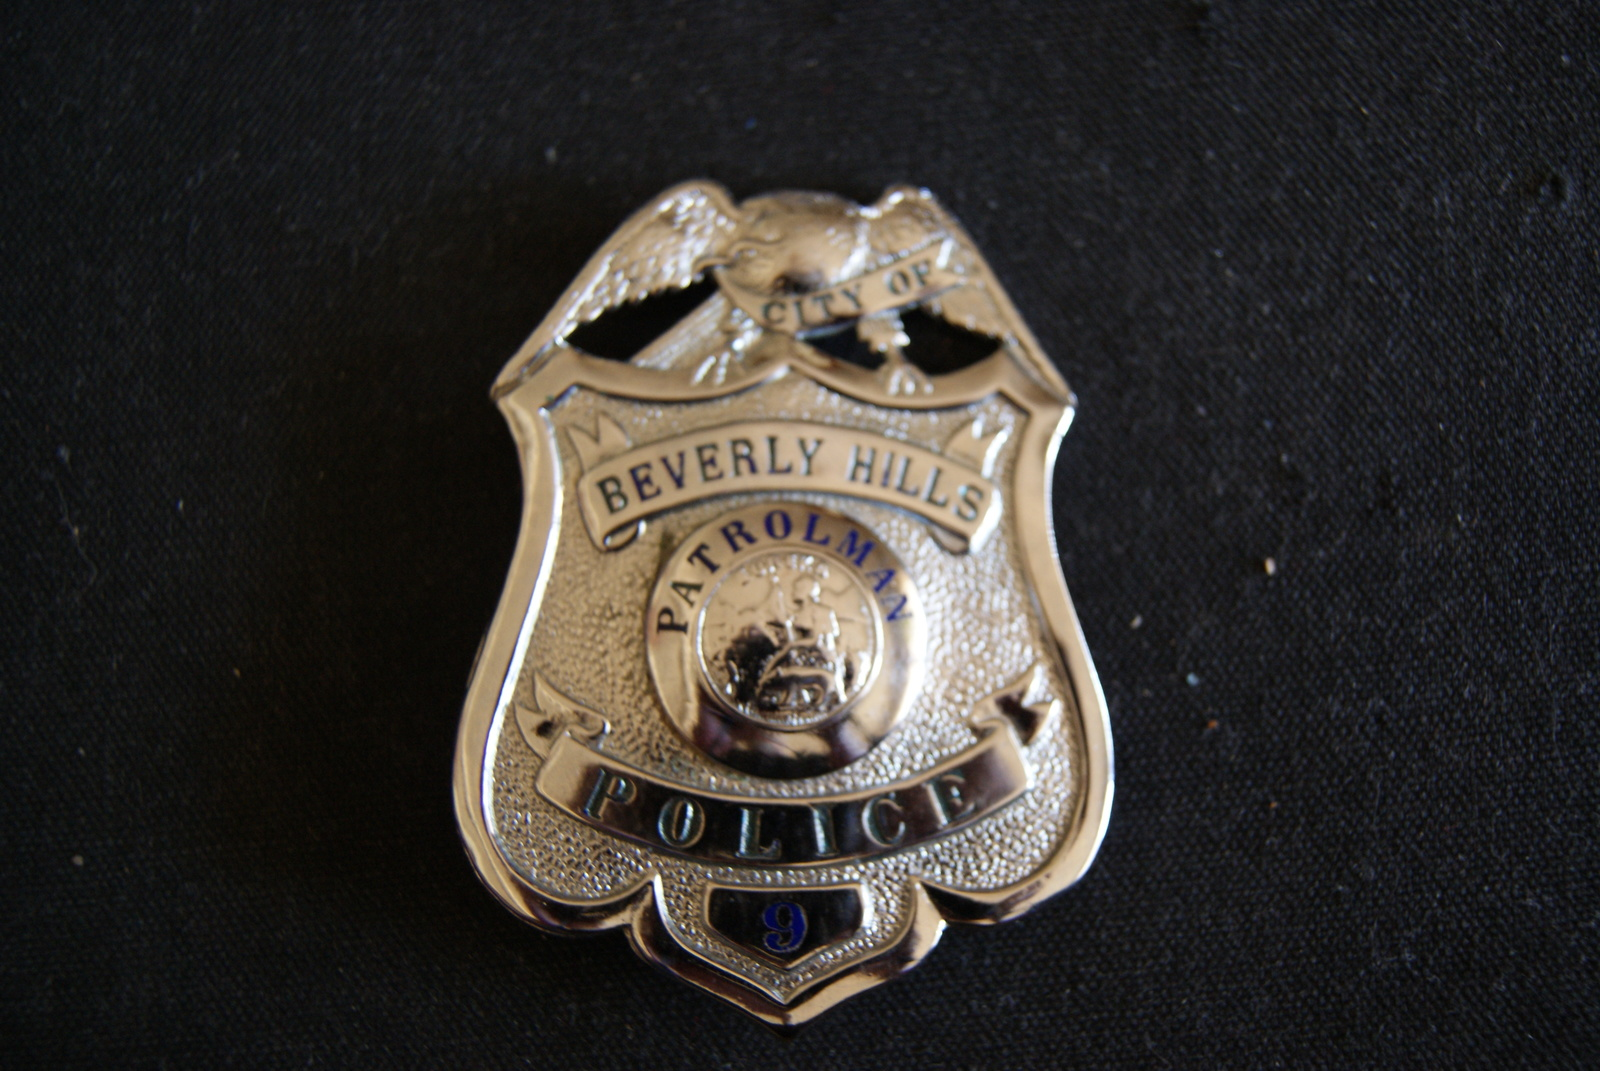 Beverly Hills Cal,Scarce Antique Police Badge W/ Wallet,.Hmk L.A Rubber Stamp Co image 3